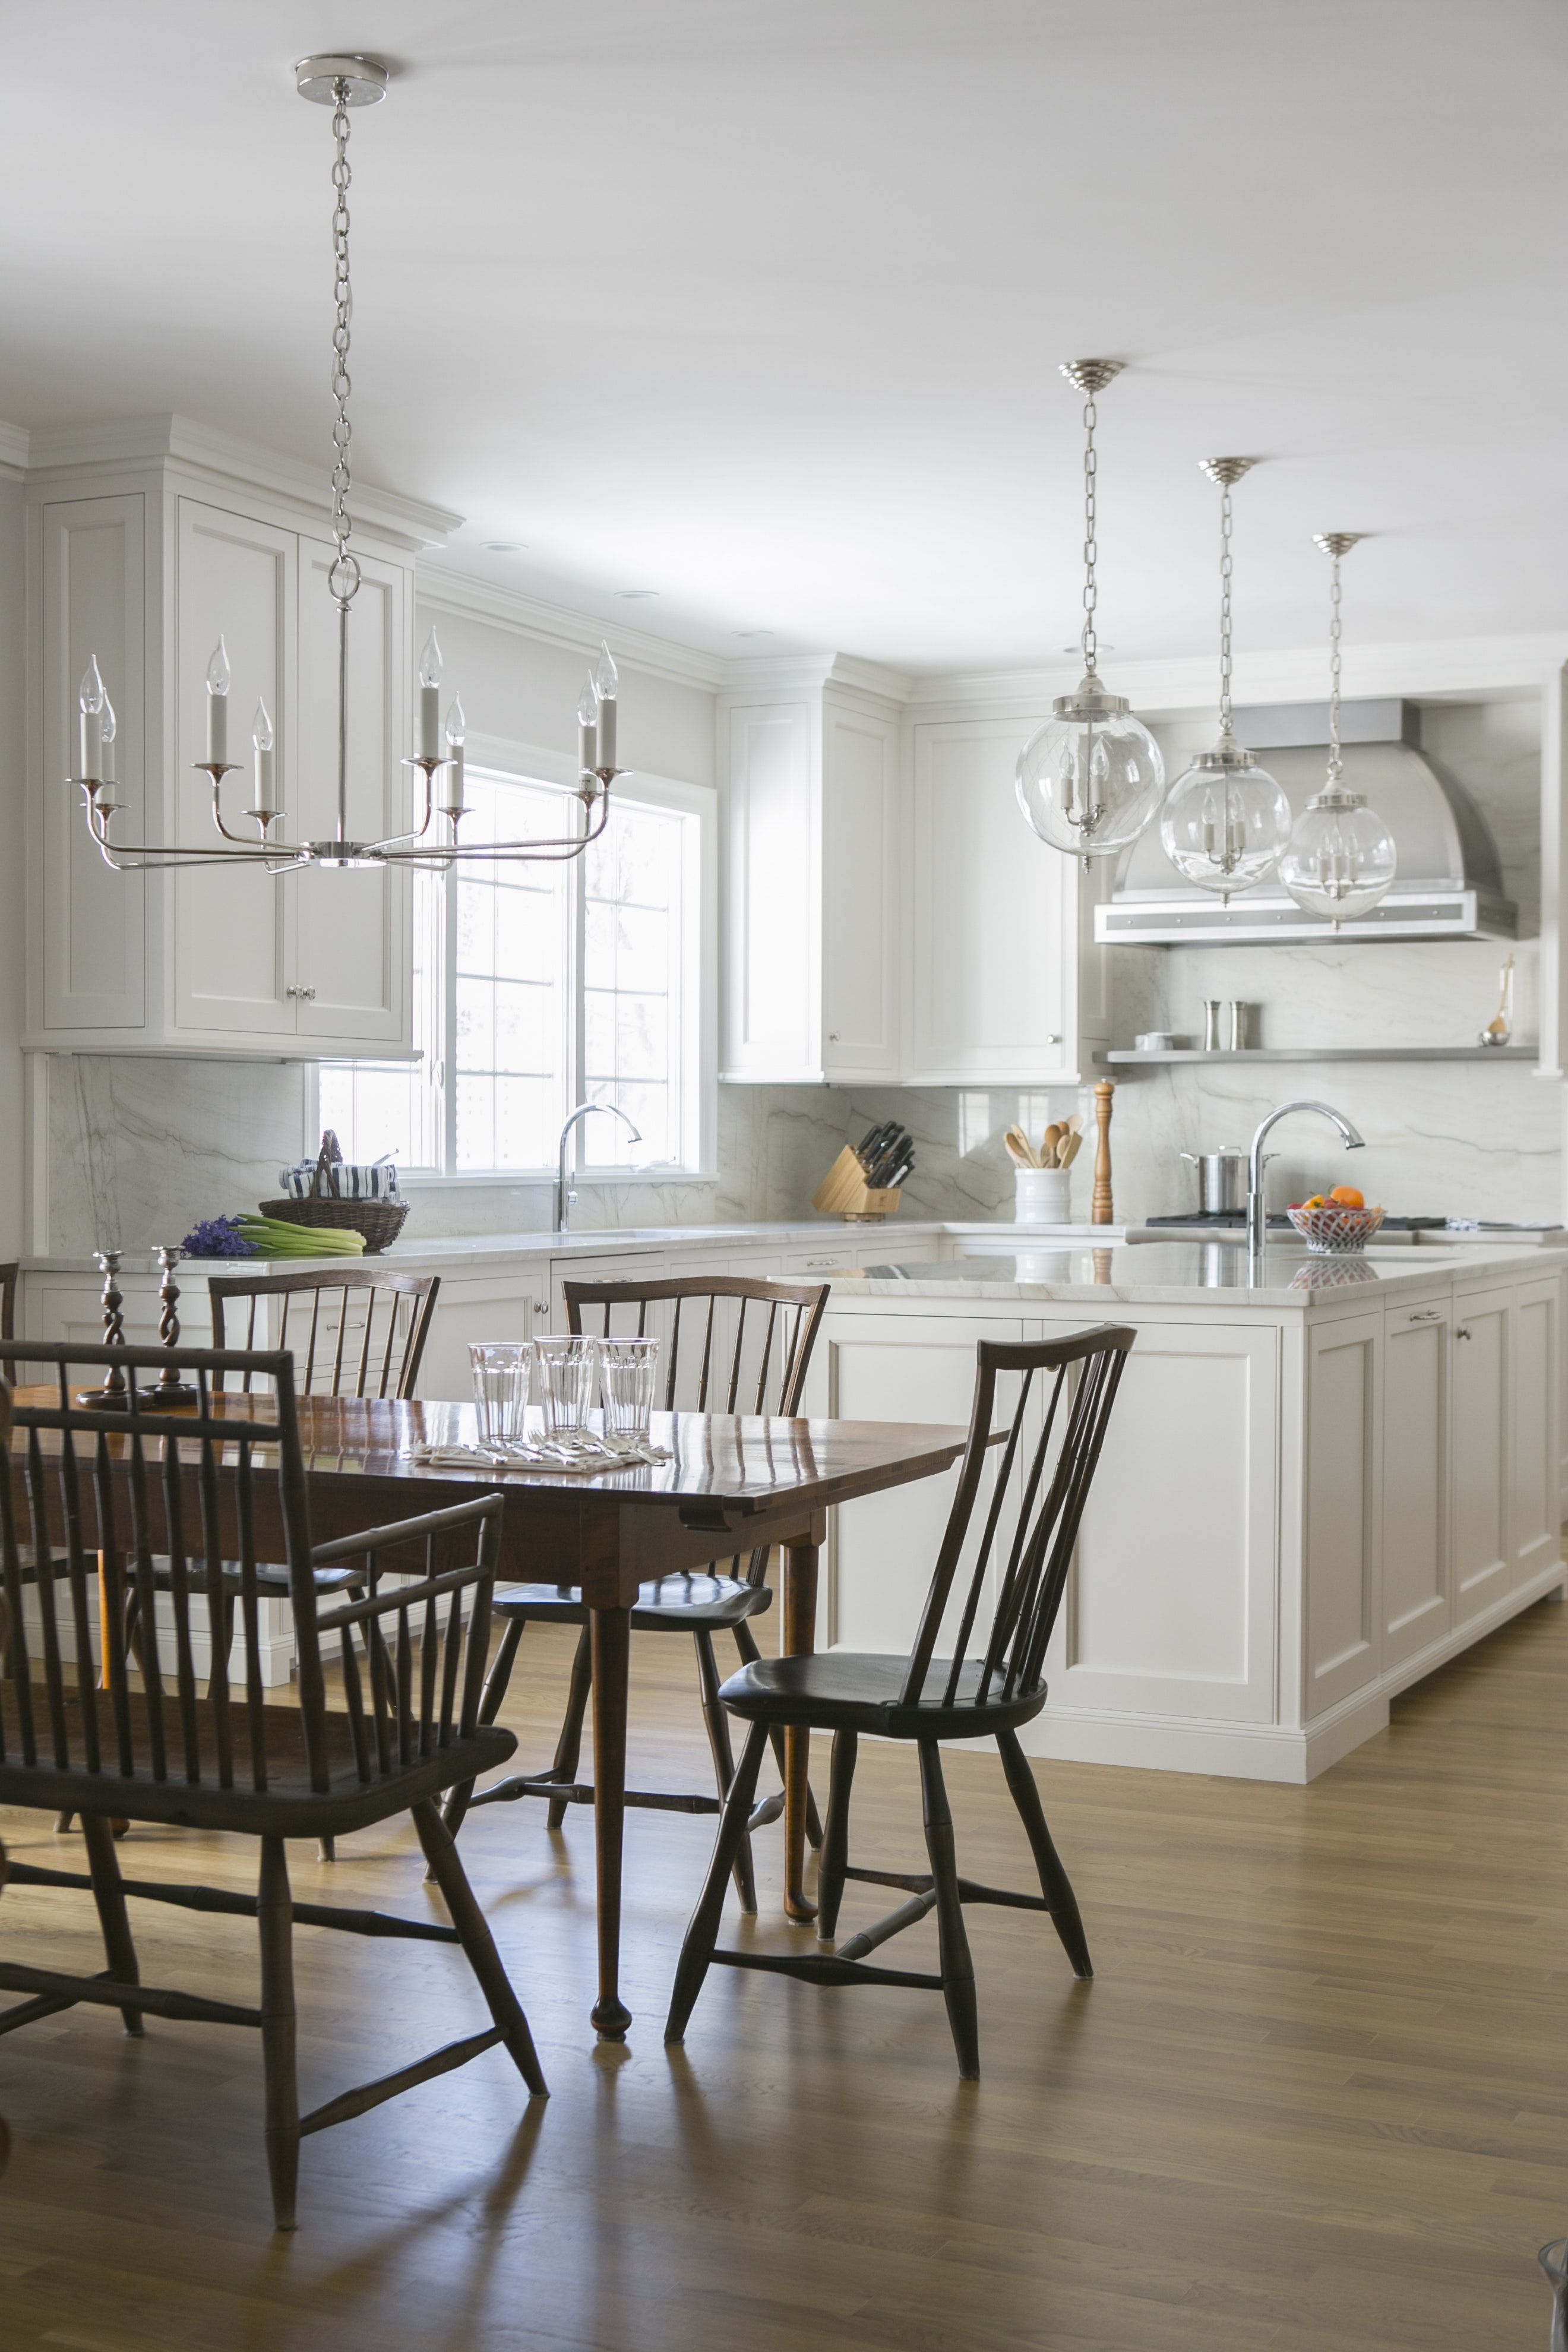 Antique Dining Chairs And Dining Table In Contrast To The Classic White Kitchen Open Dining Room Classic White Kitchen Kitchen Dining Room